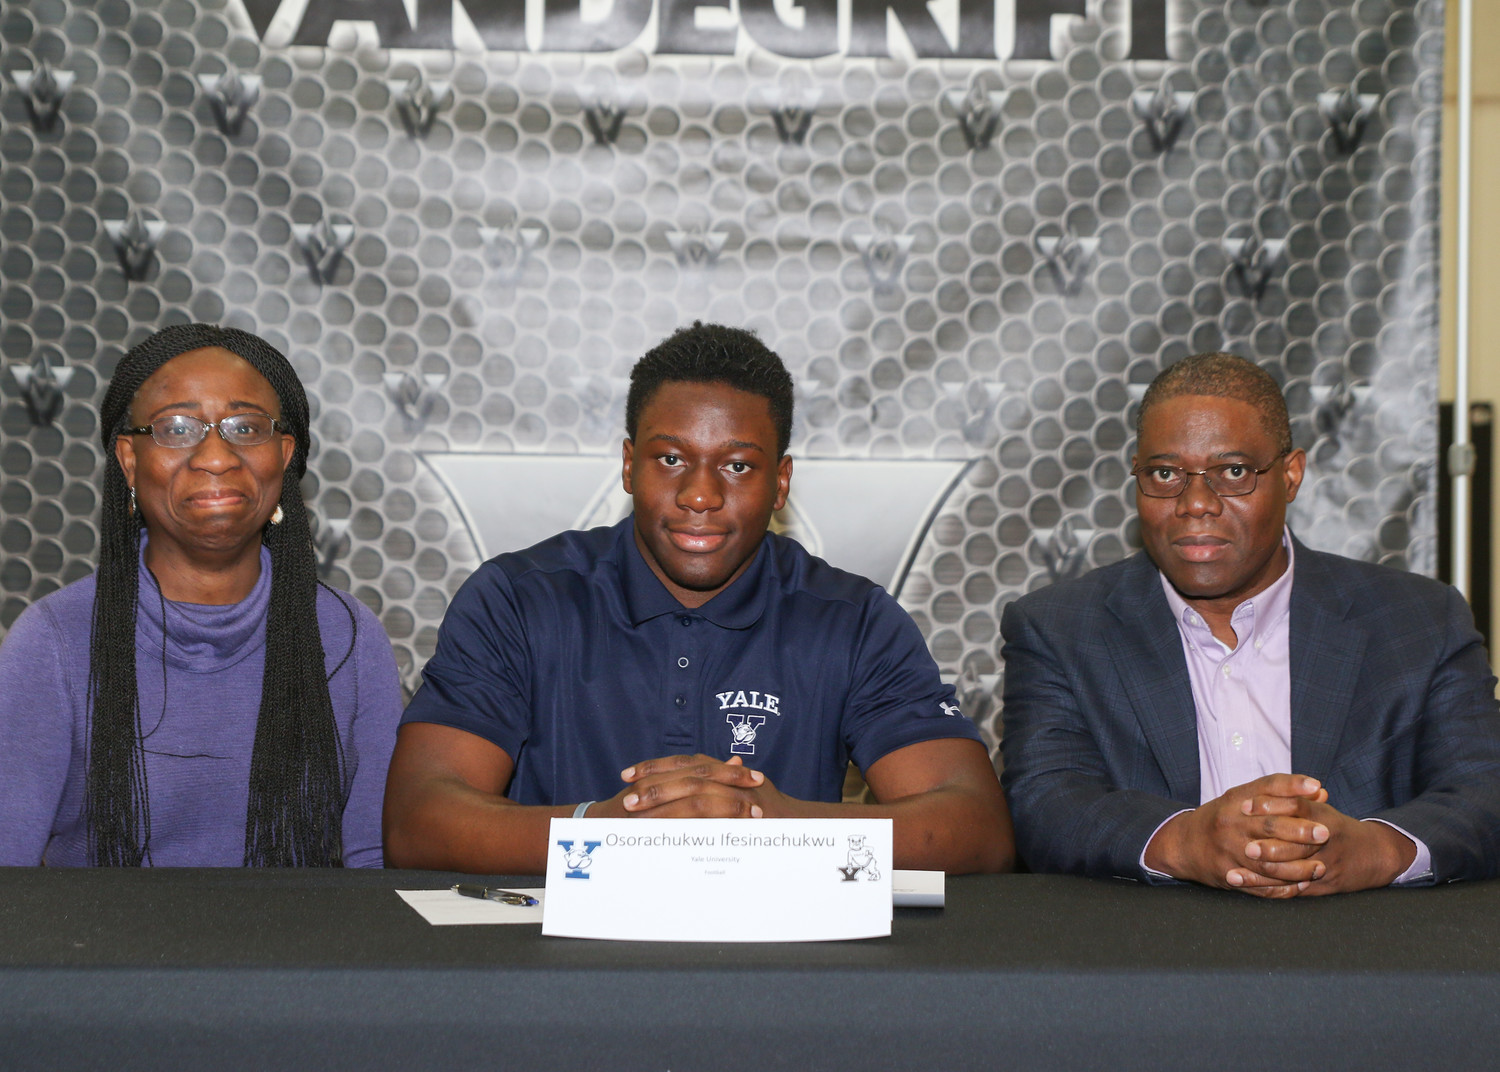 Osorachukwu Ifesinachukwu signed a letter of intent to play football at Yale University s during a signing day ceremony at Vandegrift High School on February 7, 2018.